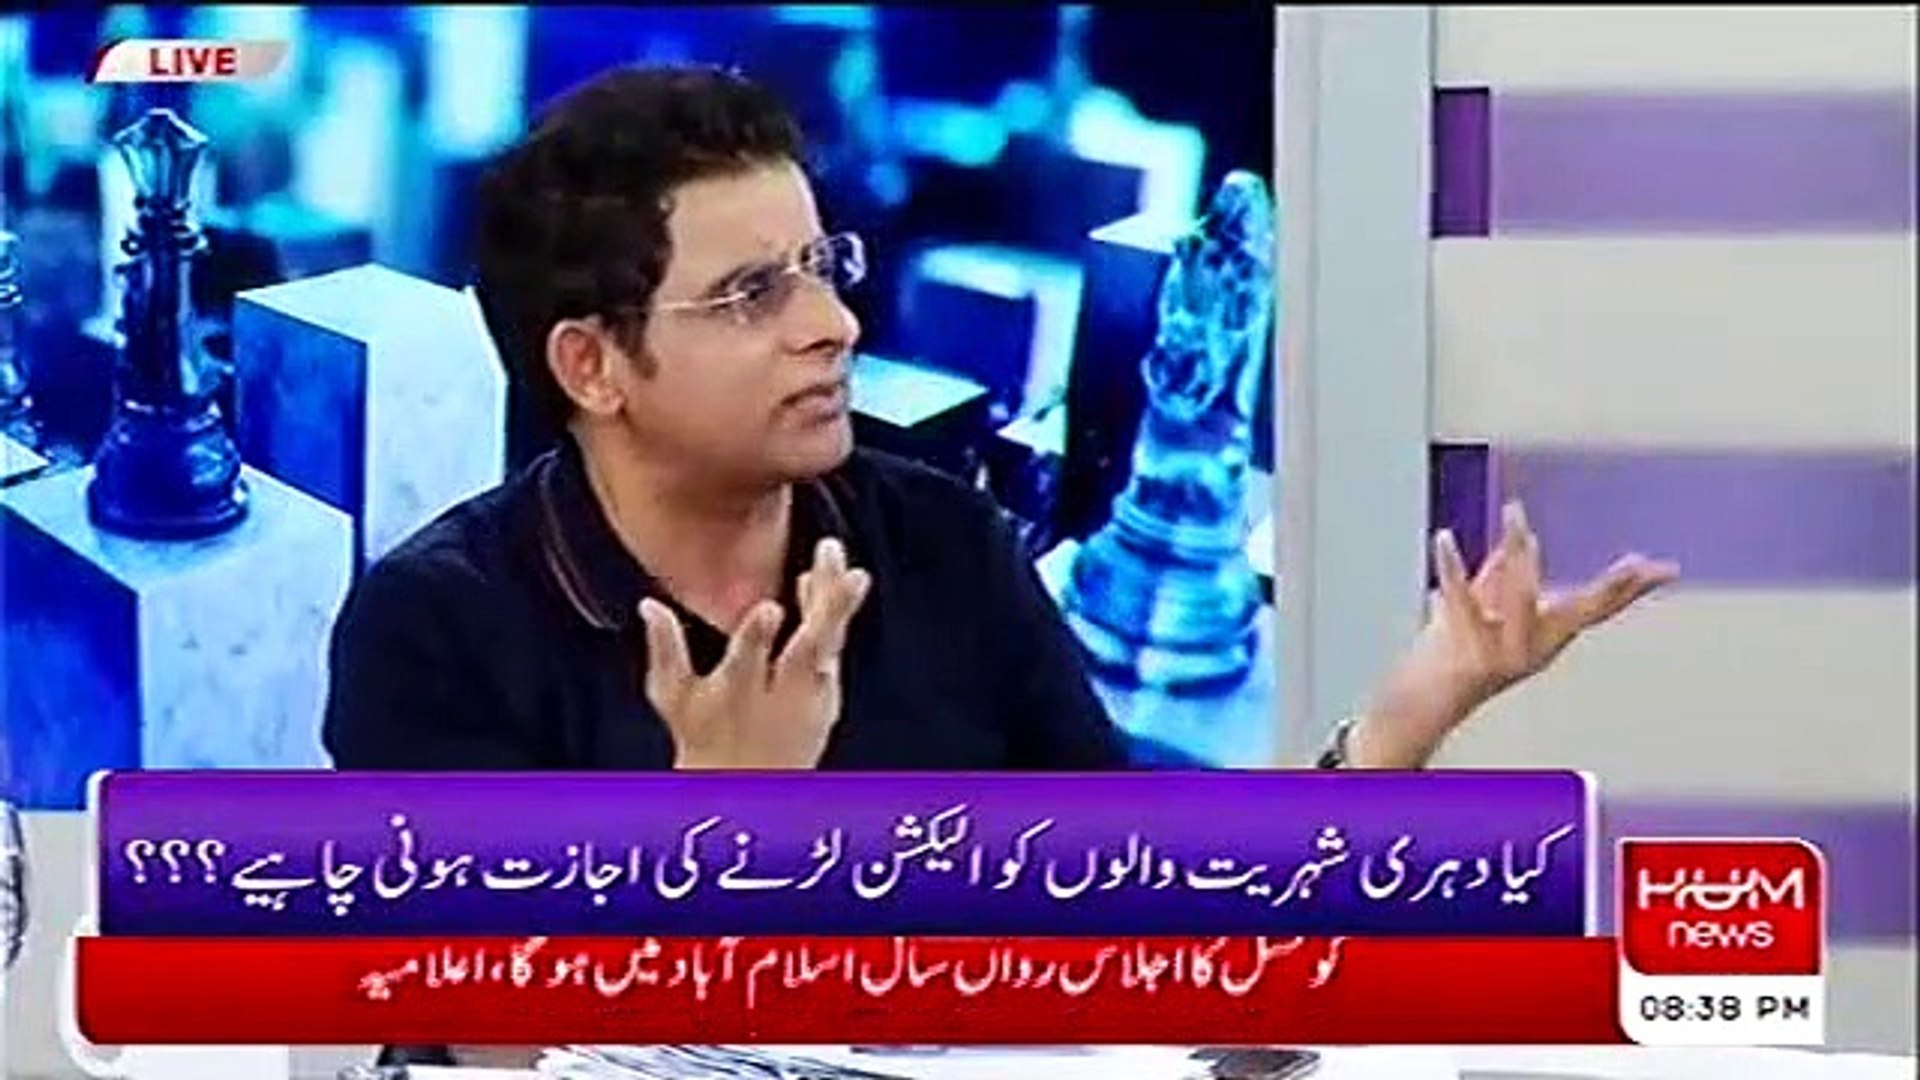 I will never speak English or say anything intellectual in front of them - Kashif Abbasi and Malick